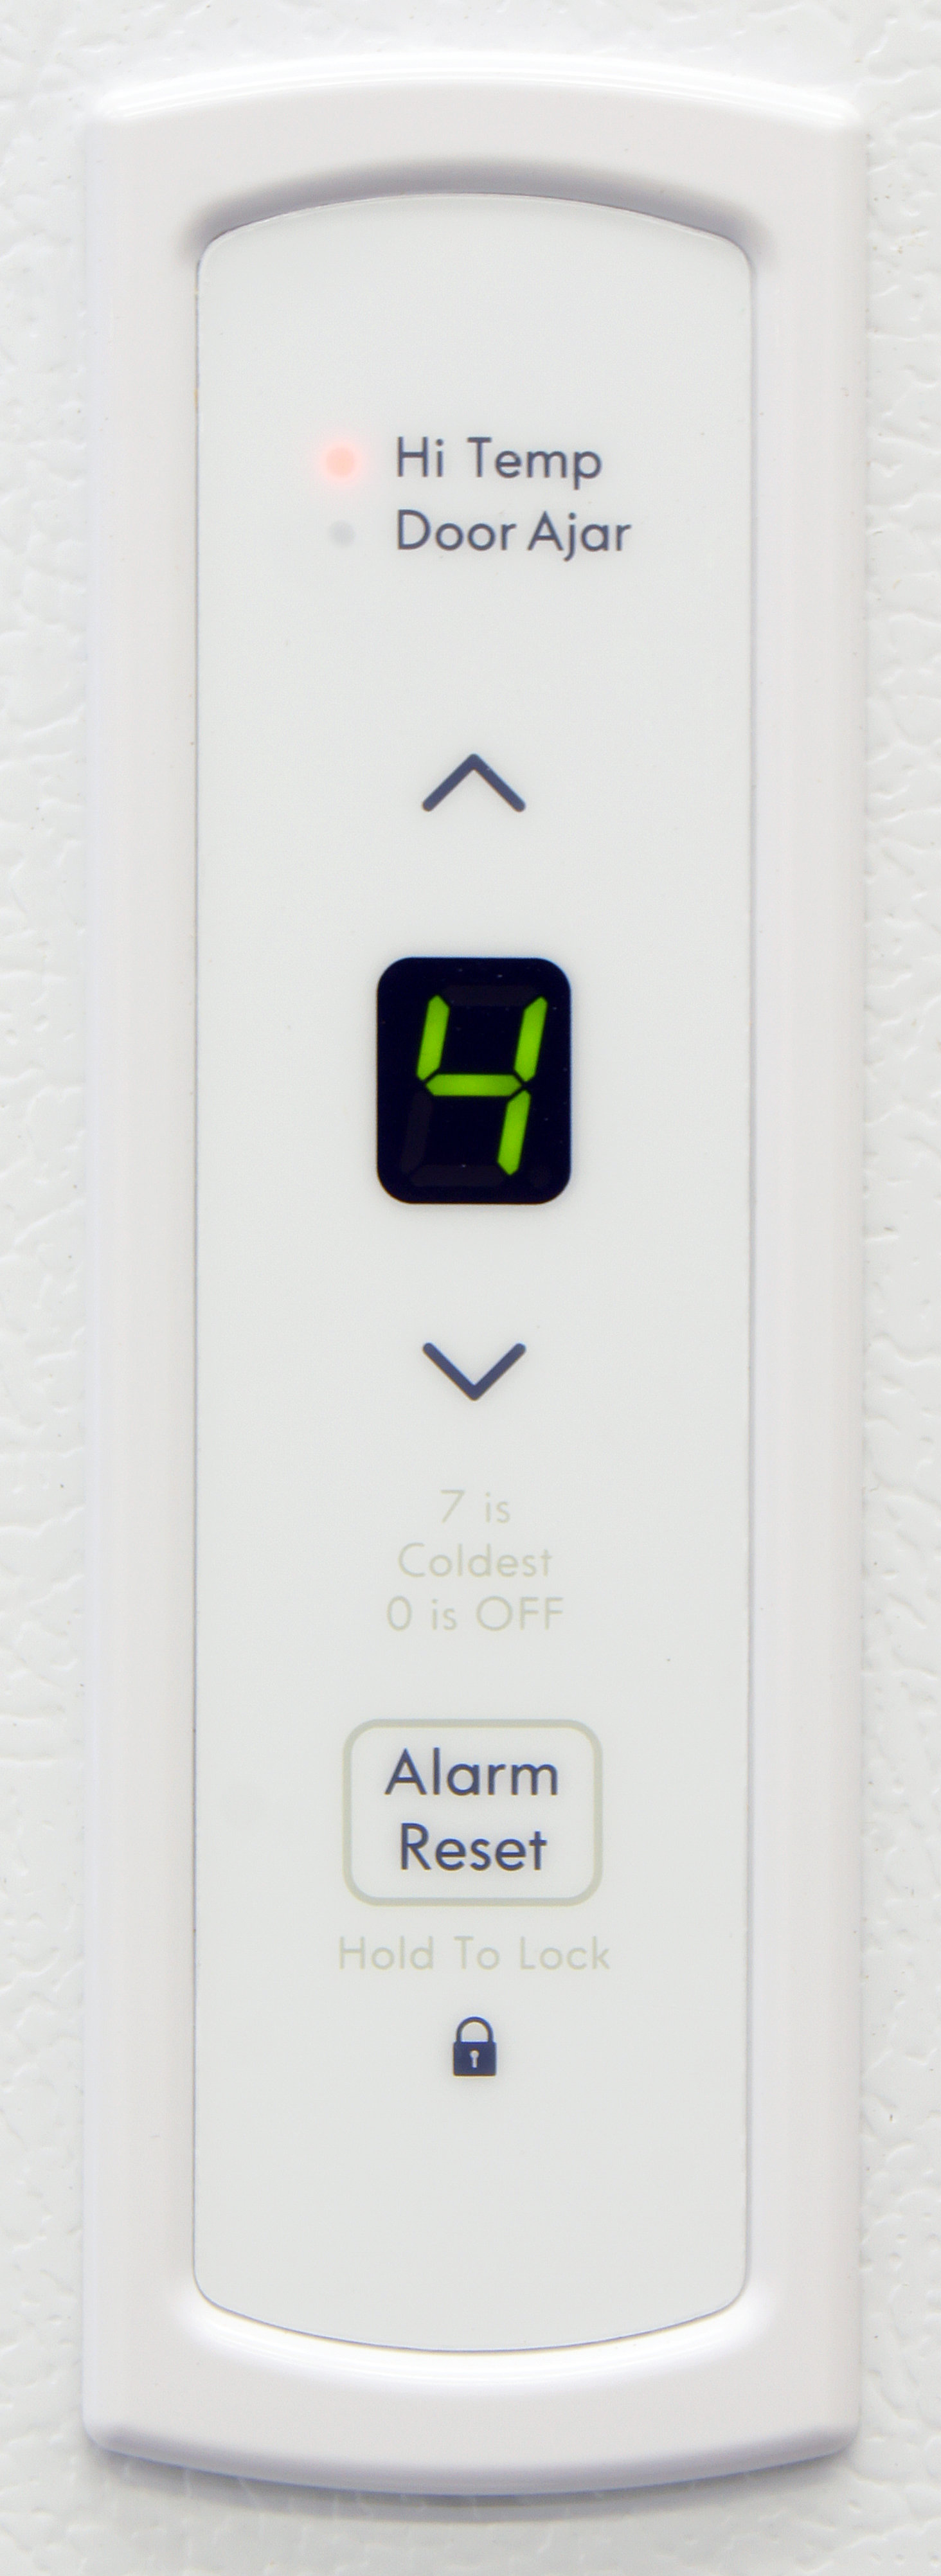 The Kenmore 28432's external controls can make calibrating the freezer much simpler despite the 0-7 scale.